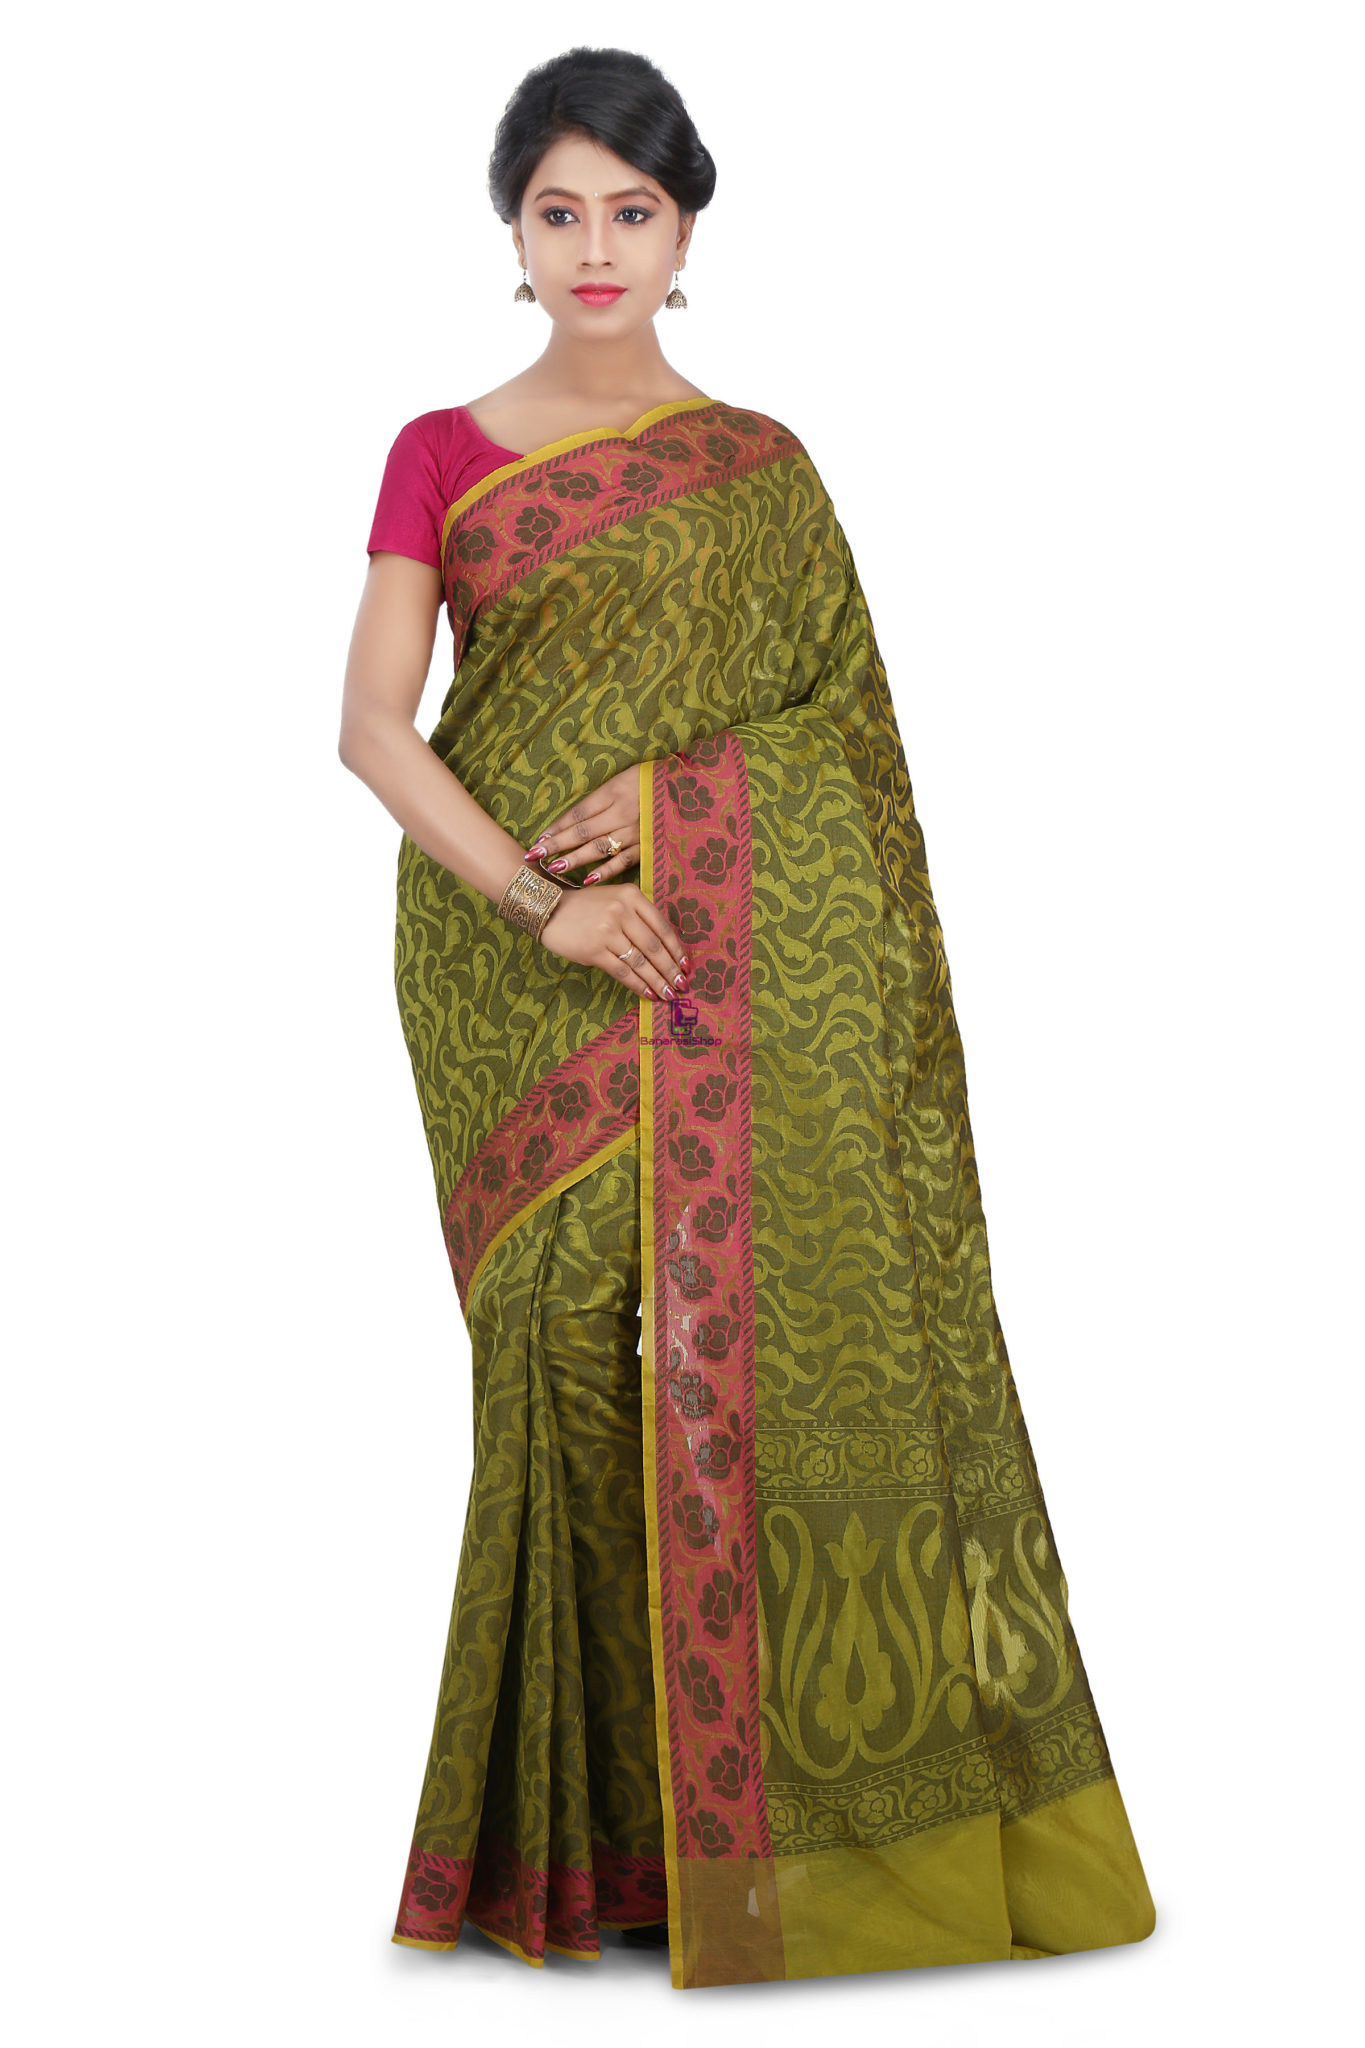 Woven Banarasi Cotton Silk Saree in Olive Green 1